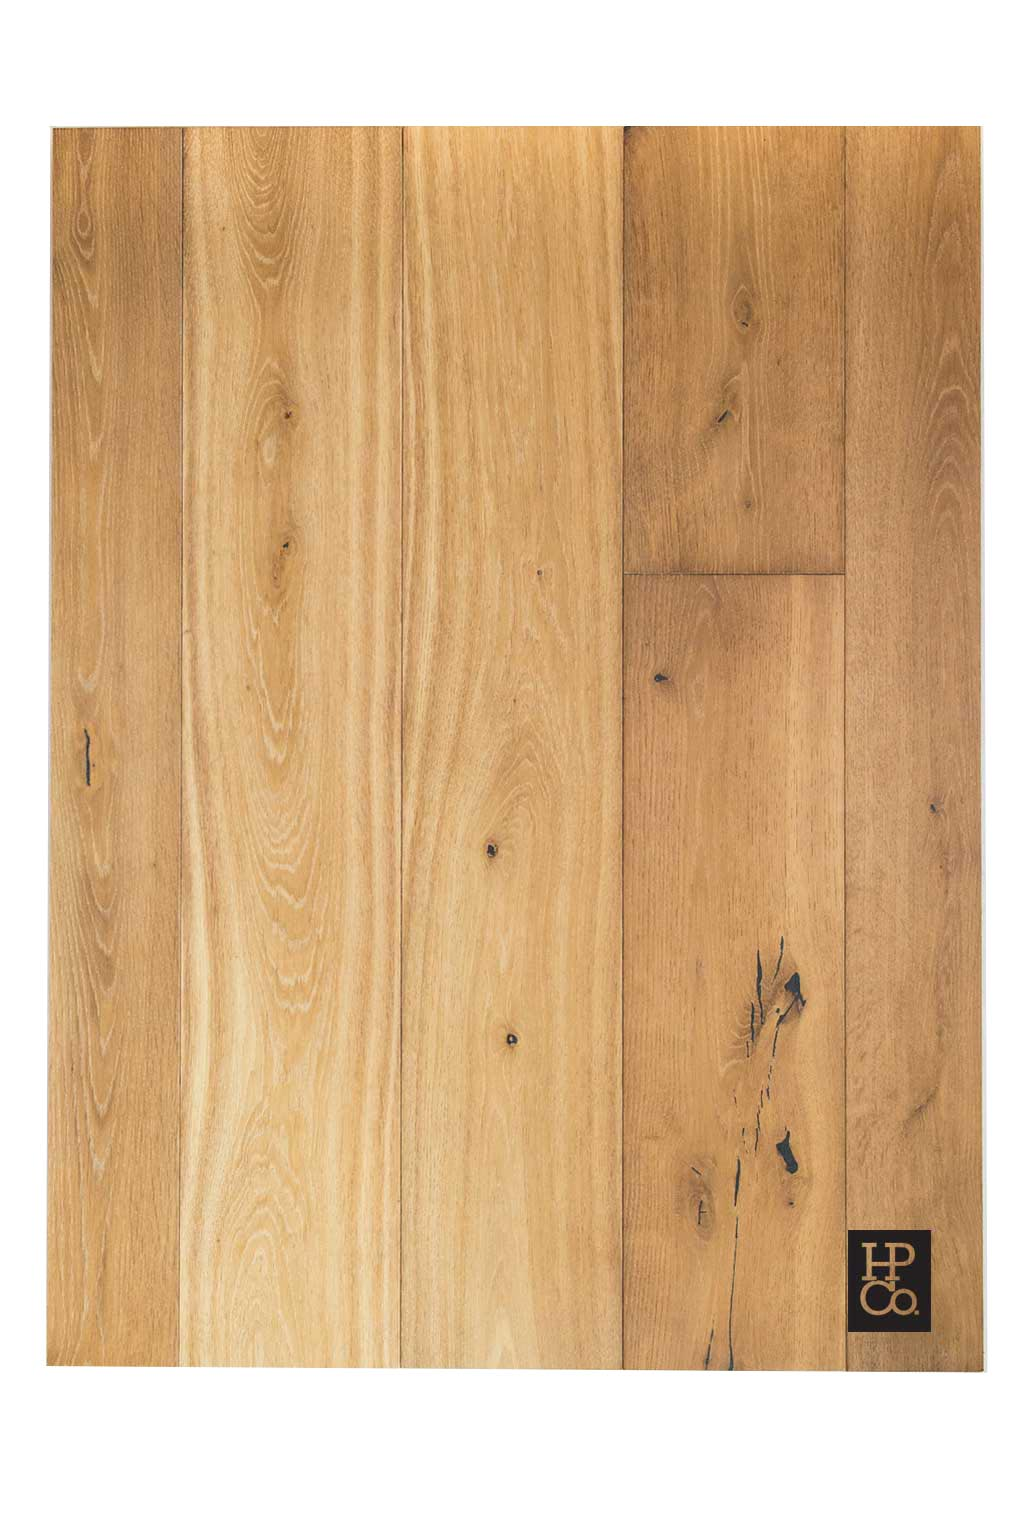 European White Oak Rustic Grade Color Gilded